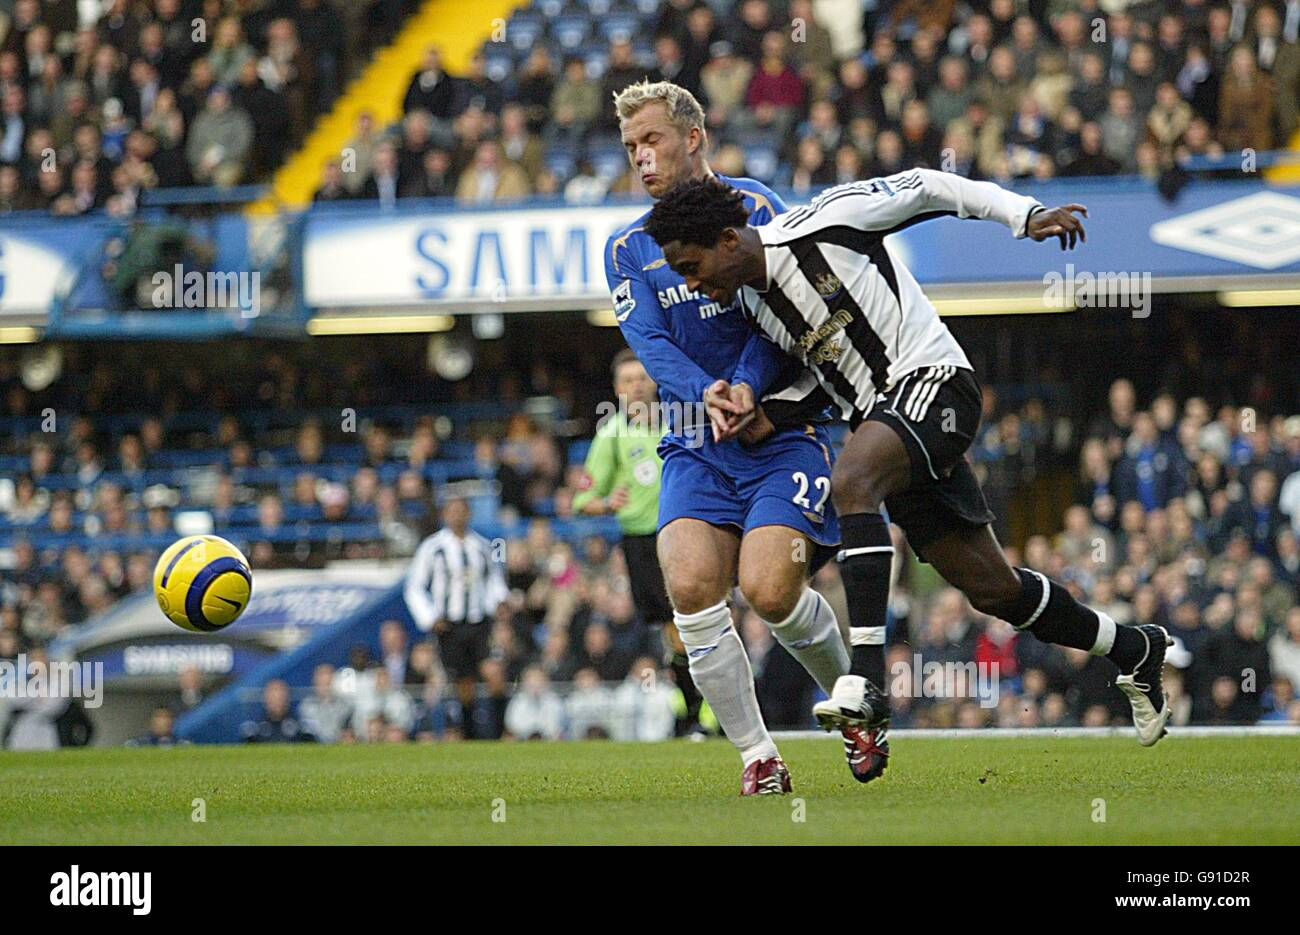 Soccer - FA Barclays Premiership - Chelsea v Newcastle United - Stamford Bridge - Stock Image